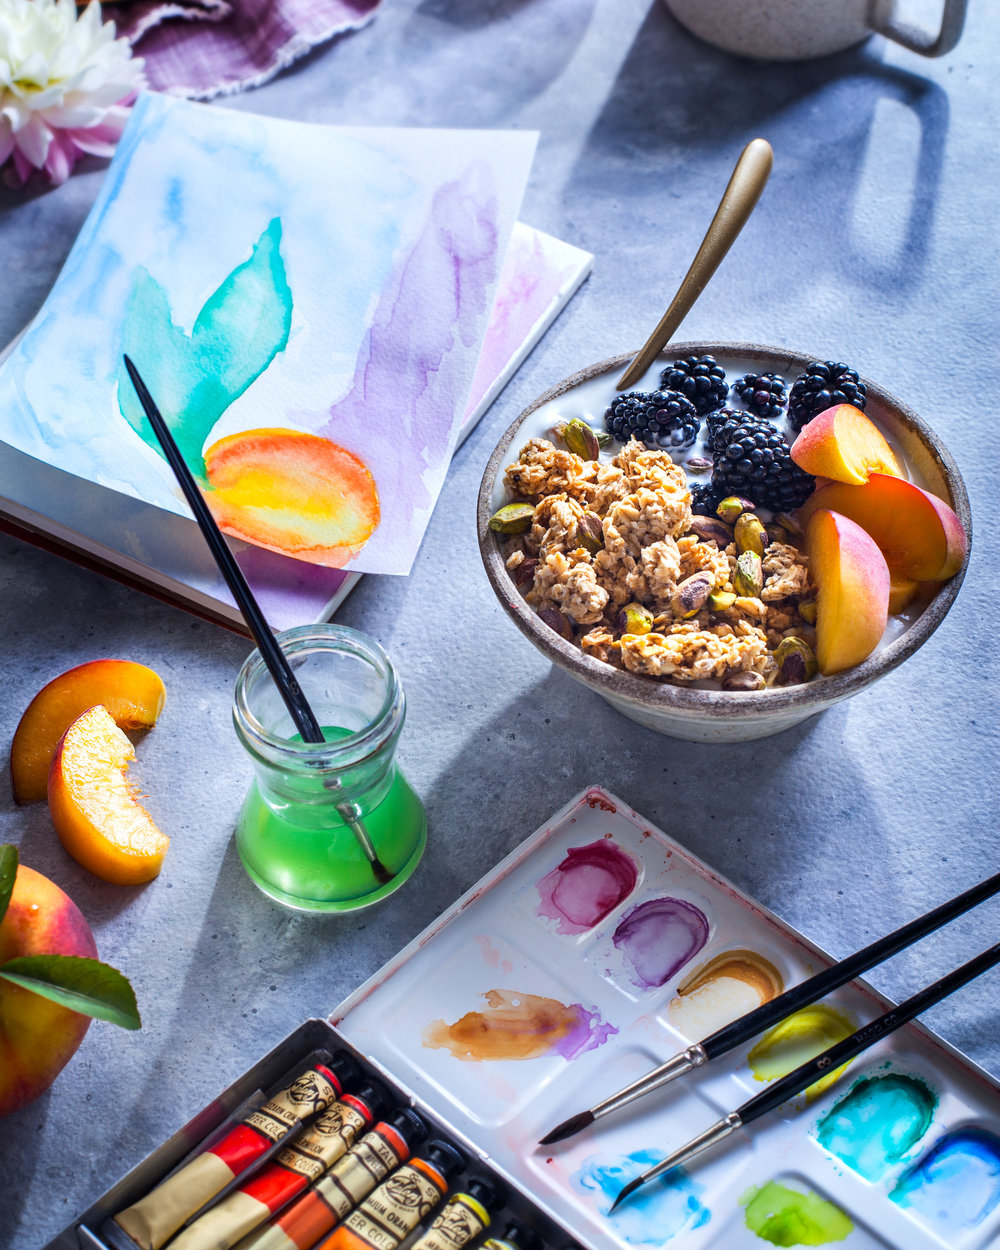 food-yogurt-granola-breakfast-lesliegrow.jpg